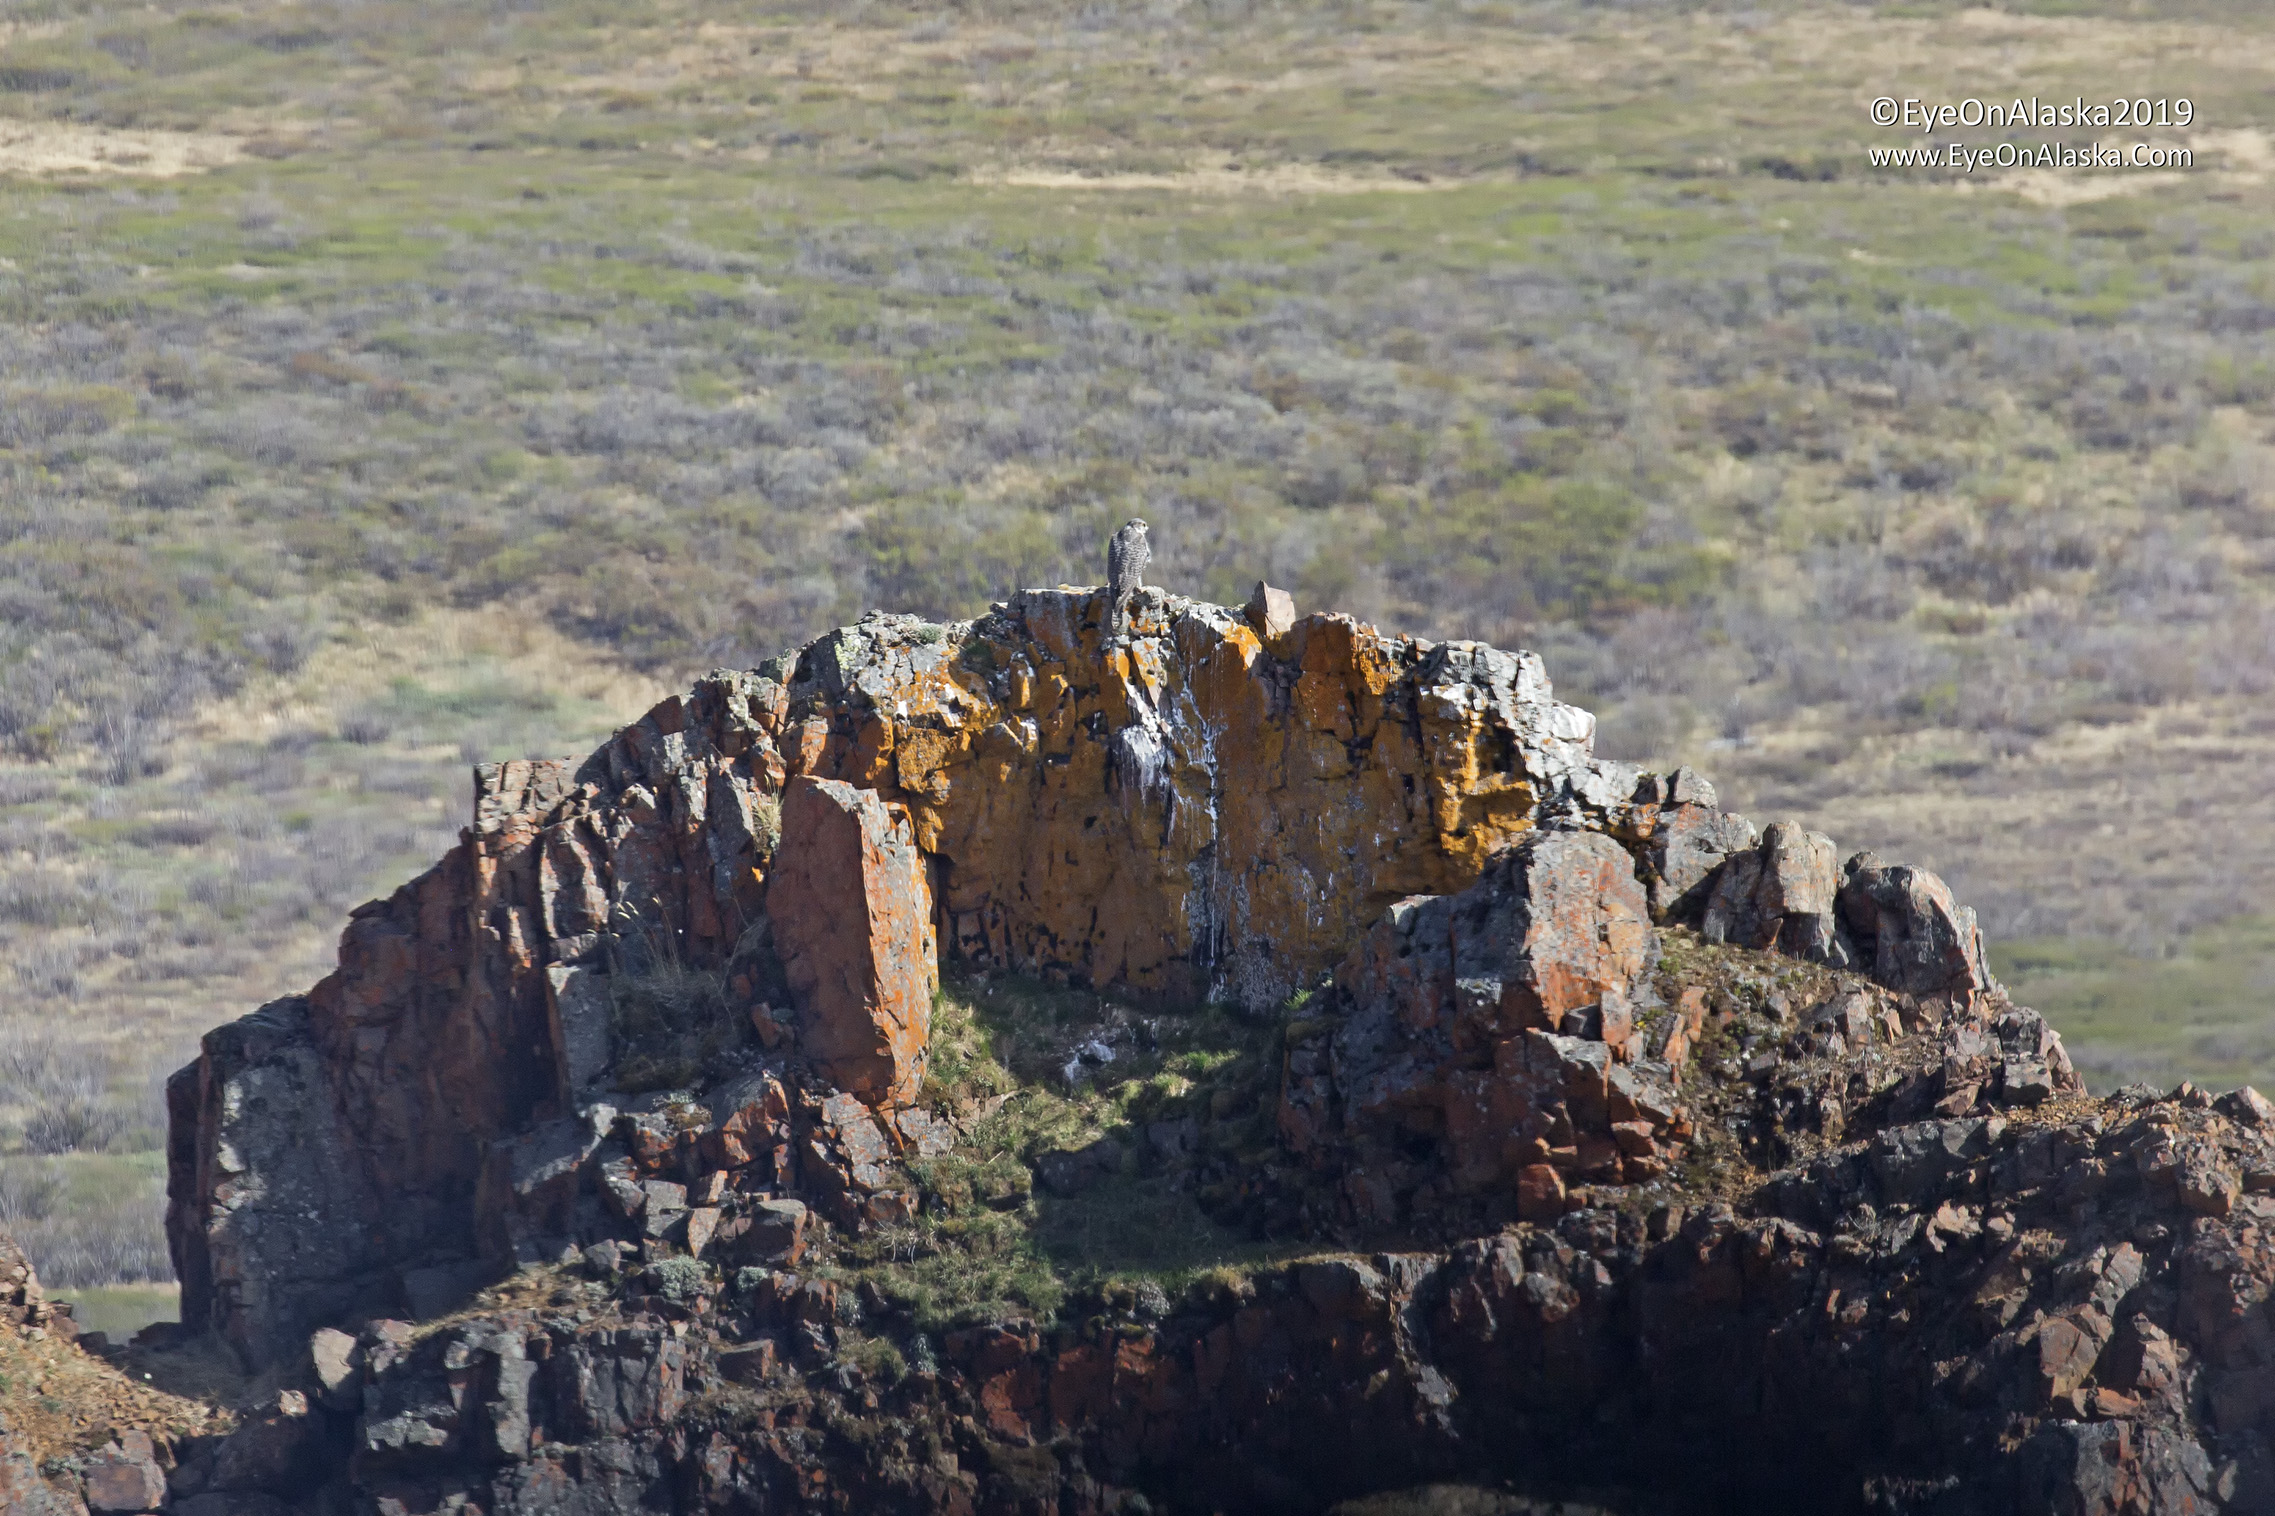 Gyrfalcon nesting in the same spot as last year in the rocks below Polychrome overlook.